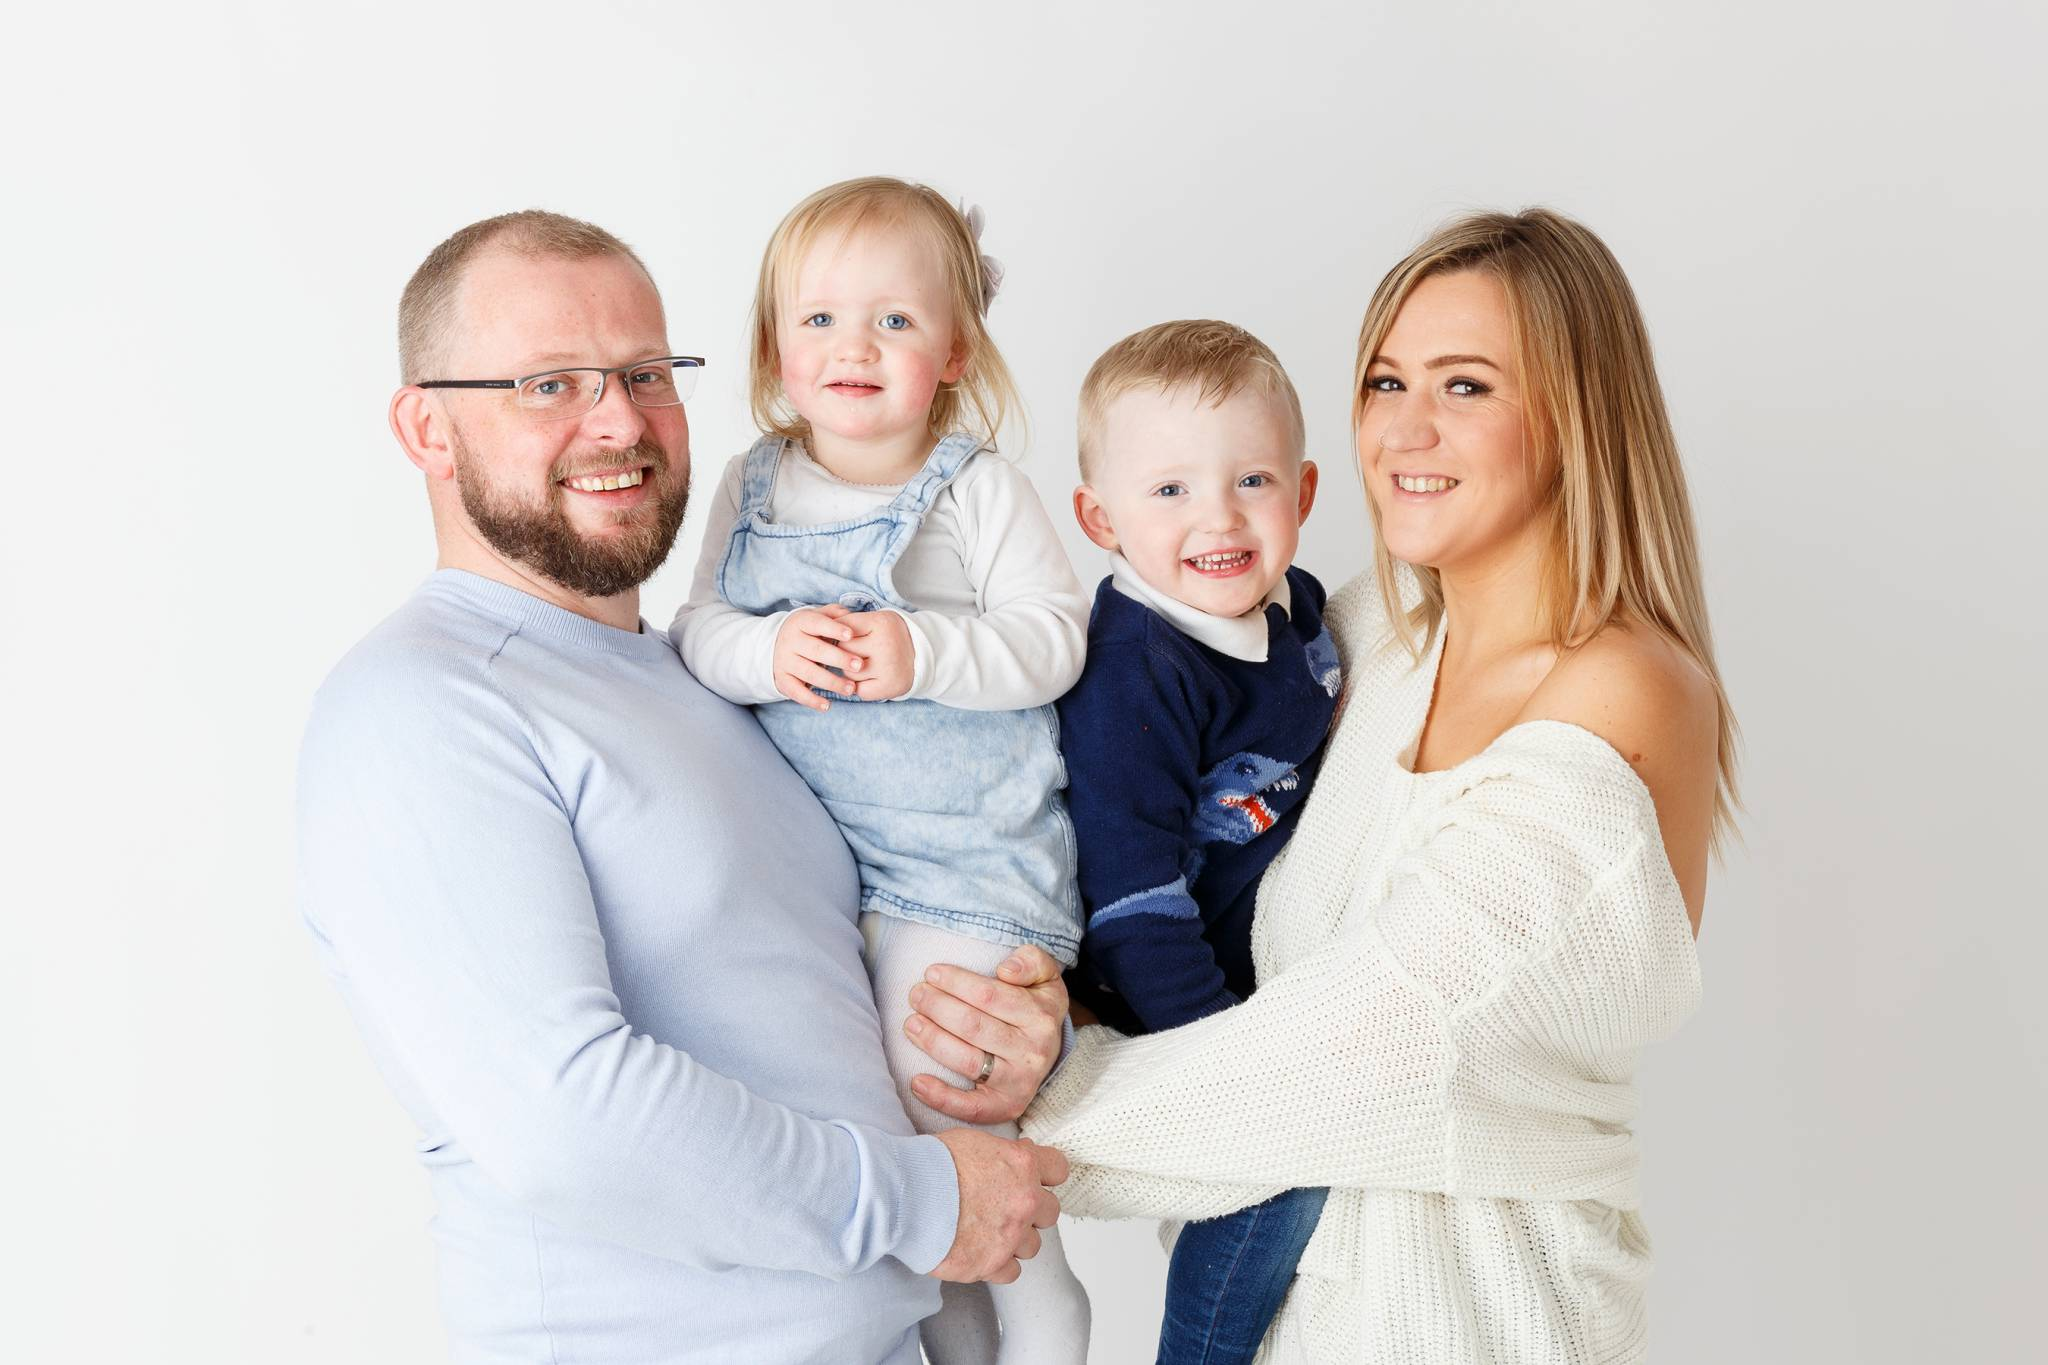 Family Photoshoot, family photographer, family photography, children photoshoot, baby photography, baby photoshoot,studio photography, studio photoshoot, high wycombe, buckinghamshire